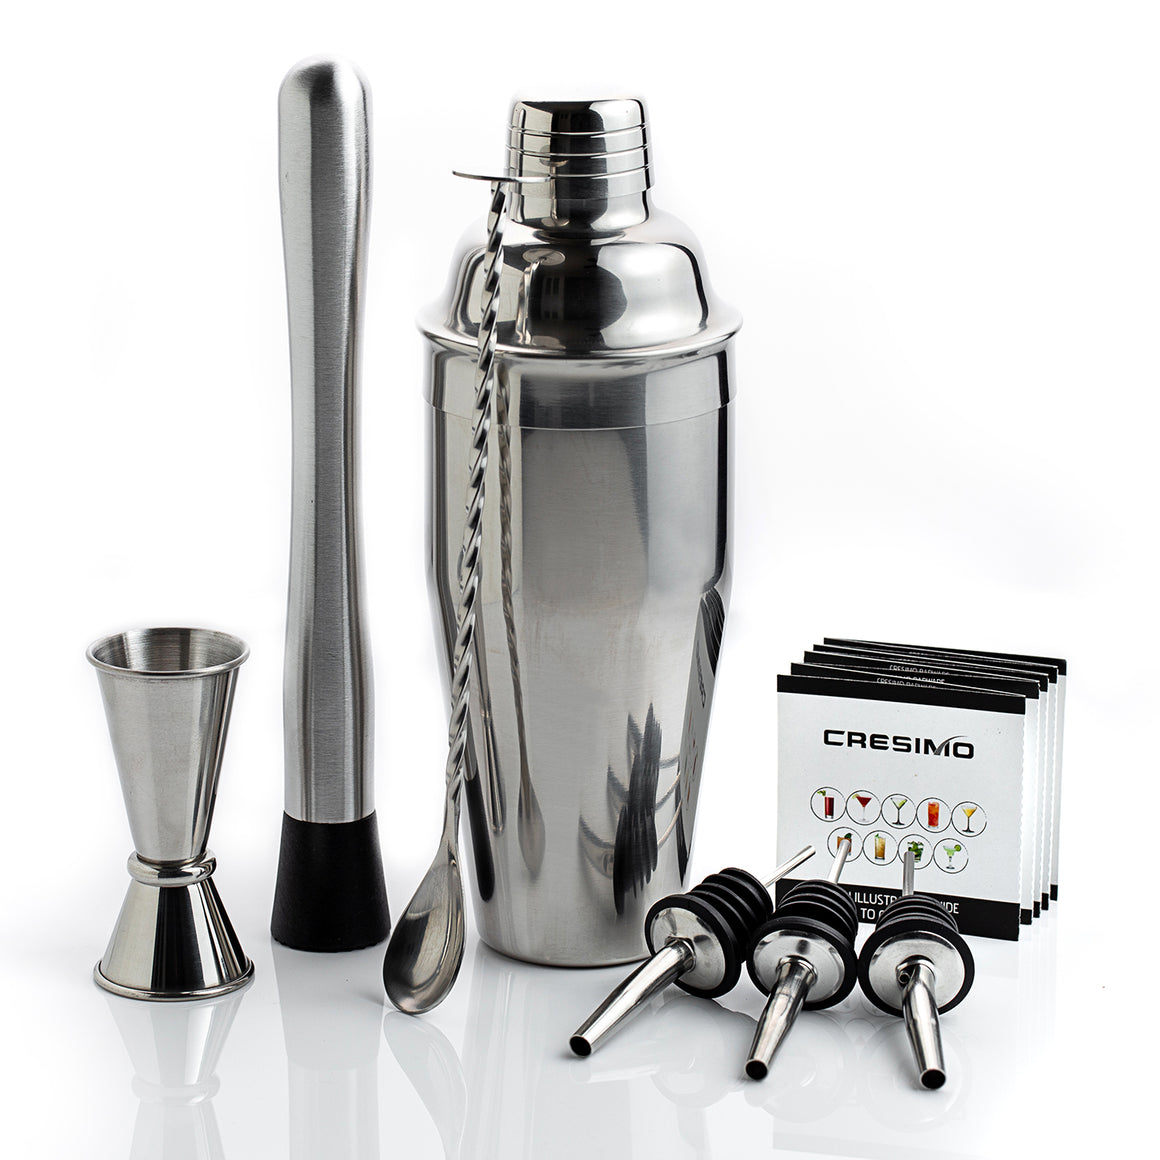 24 Ounce Cocktail Shaker Bar Set with Accessories